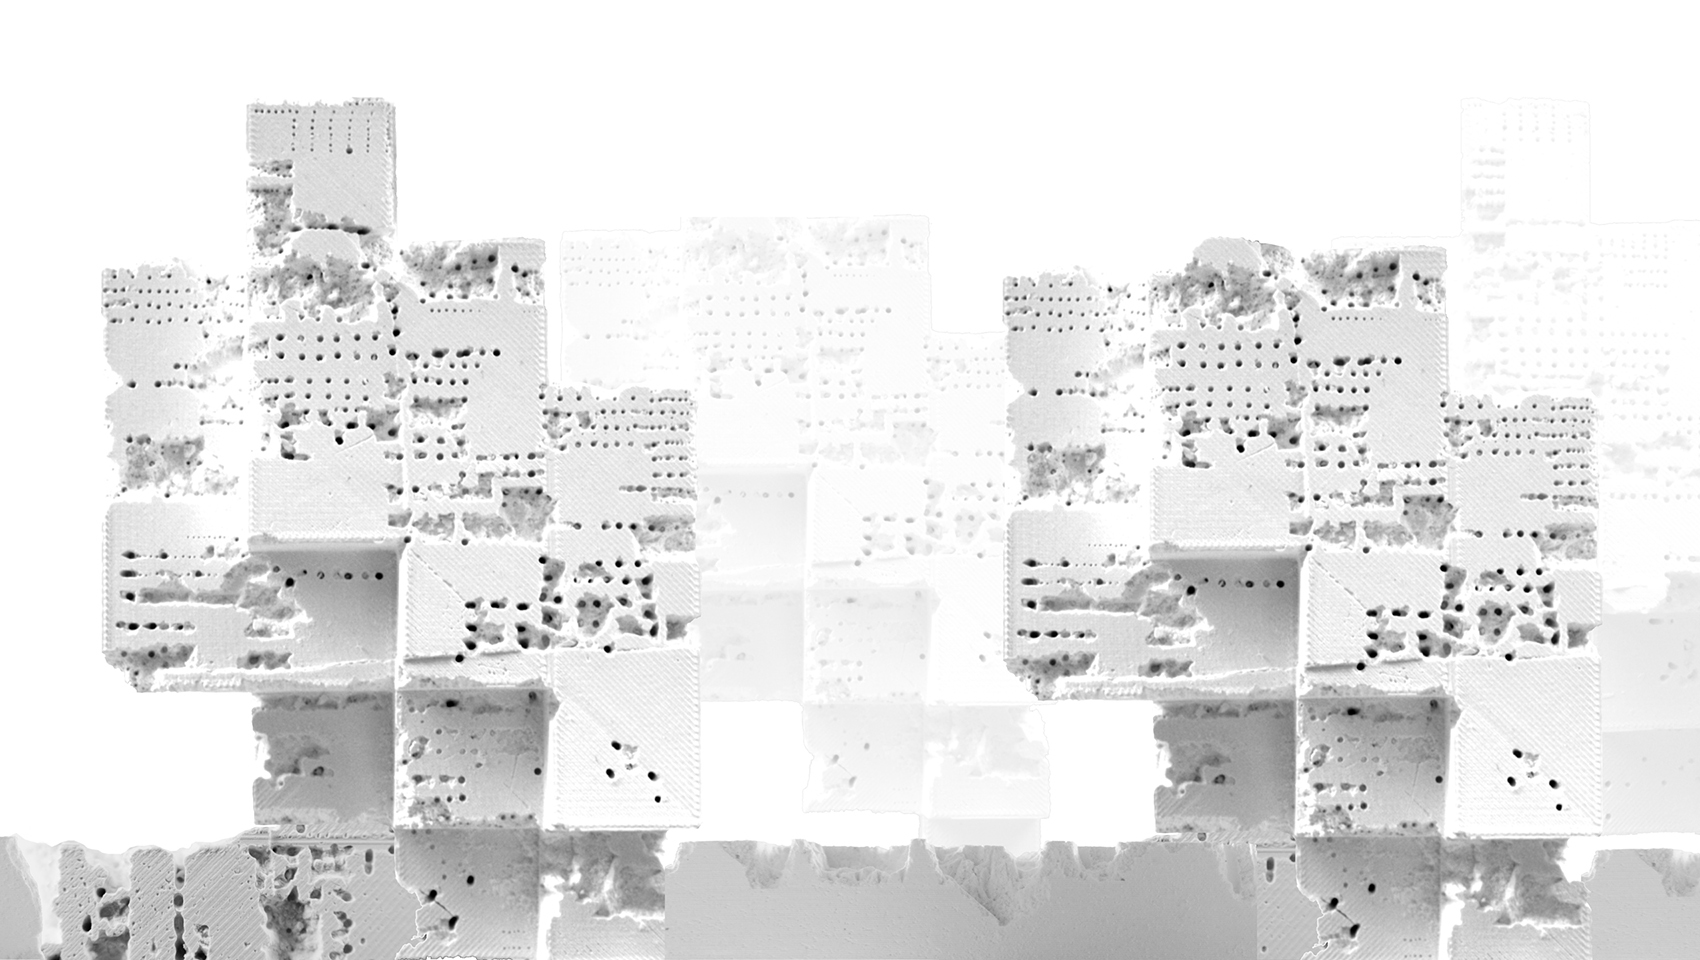 White architectural models fabricated with a robotic arm